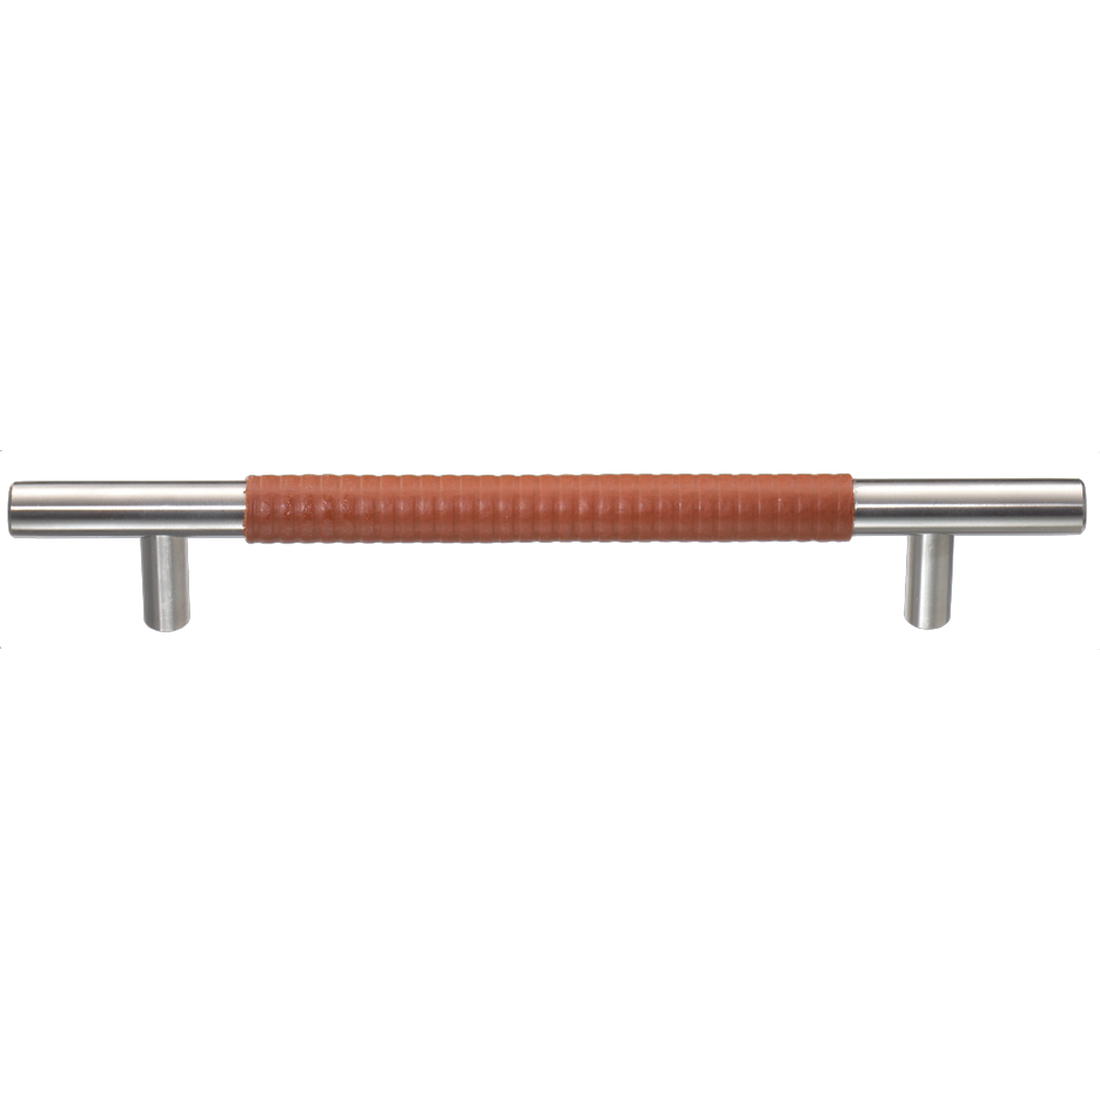 CERES BAR HANDLE ø 12 MM, WITH EMBOSSED LEATHER